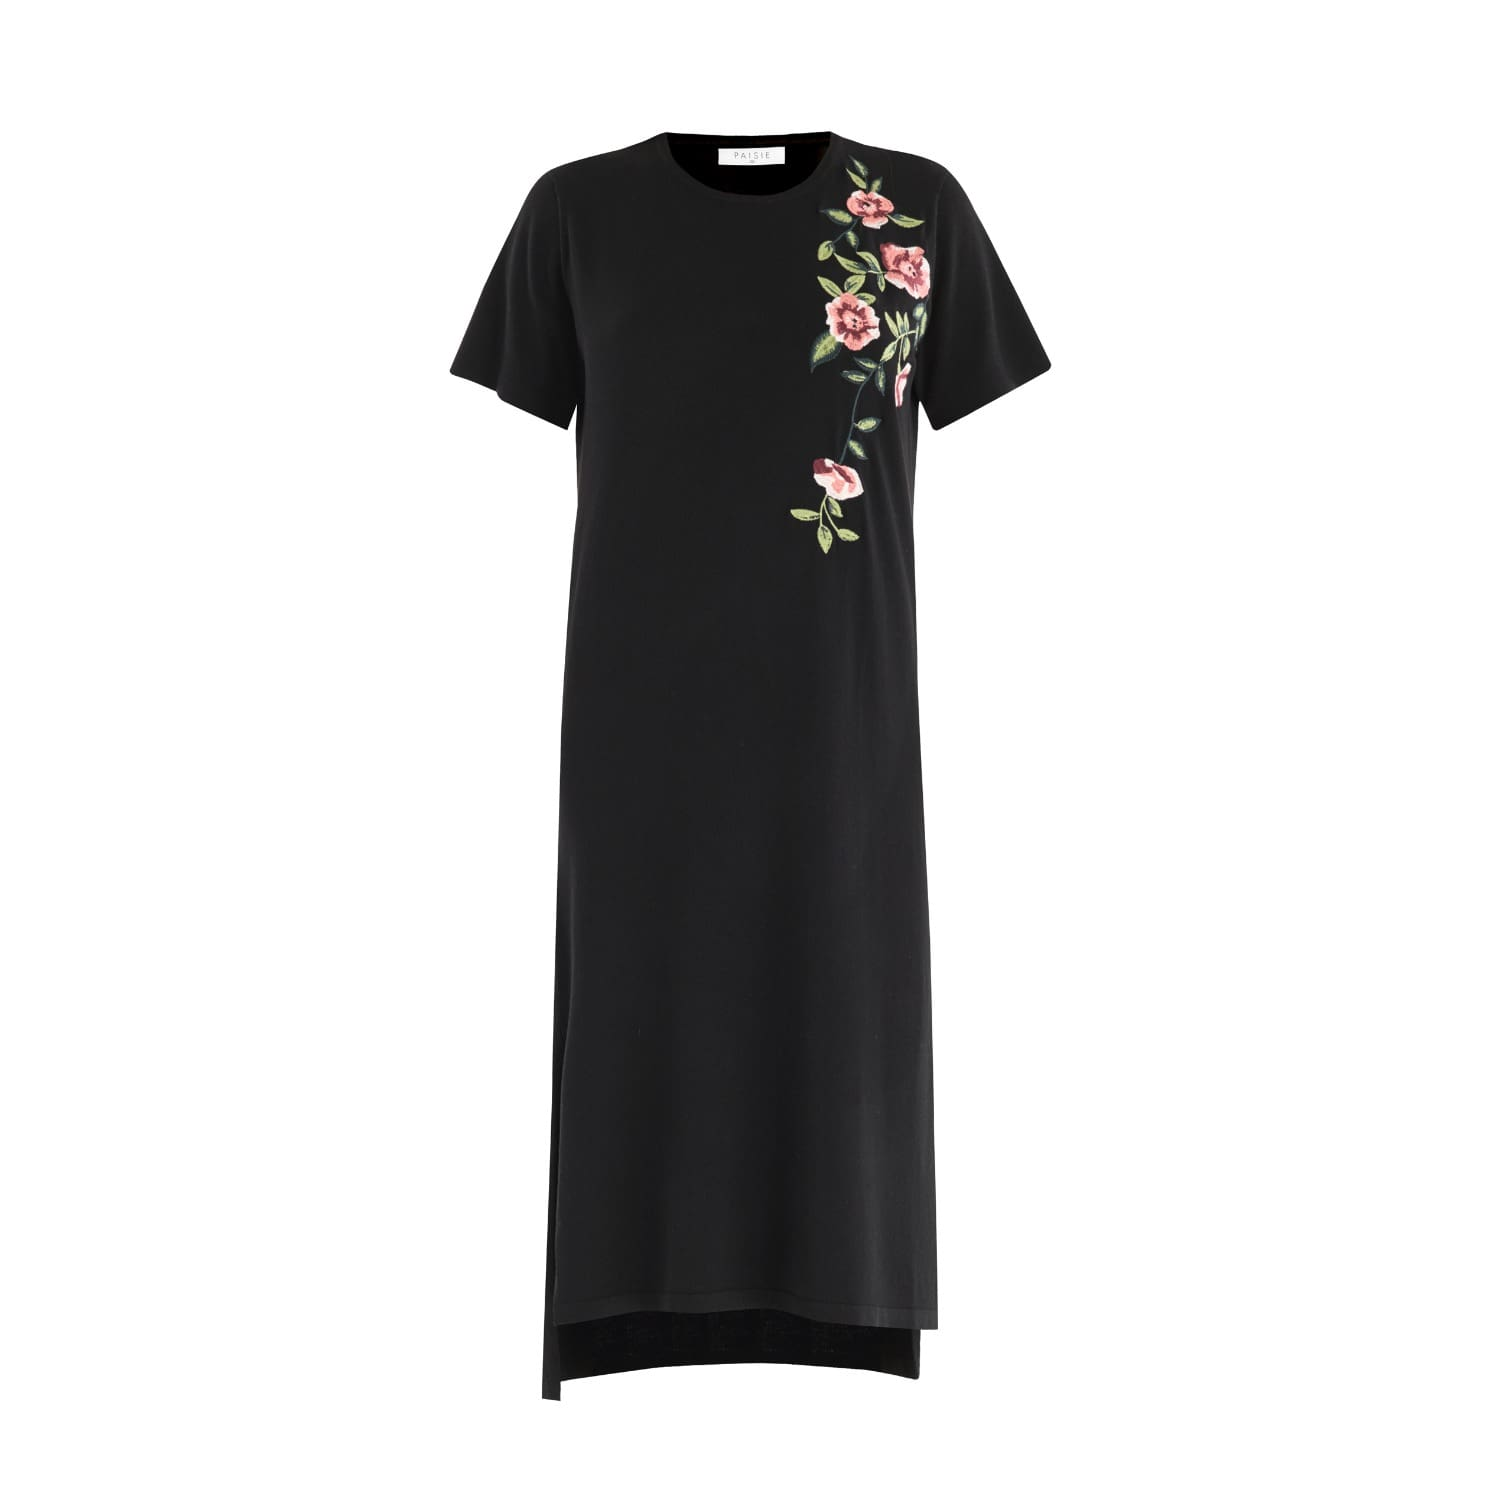 ed2f5500def Jumper Dress with Floral Embroidery in Black image